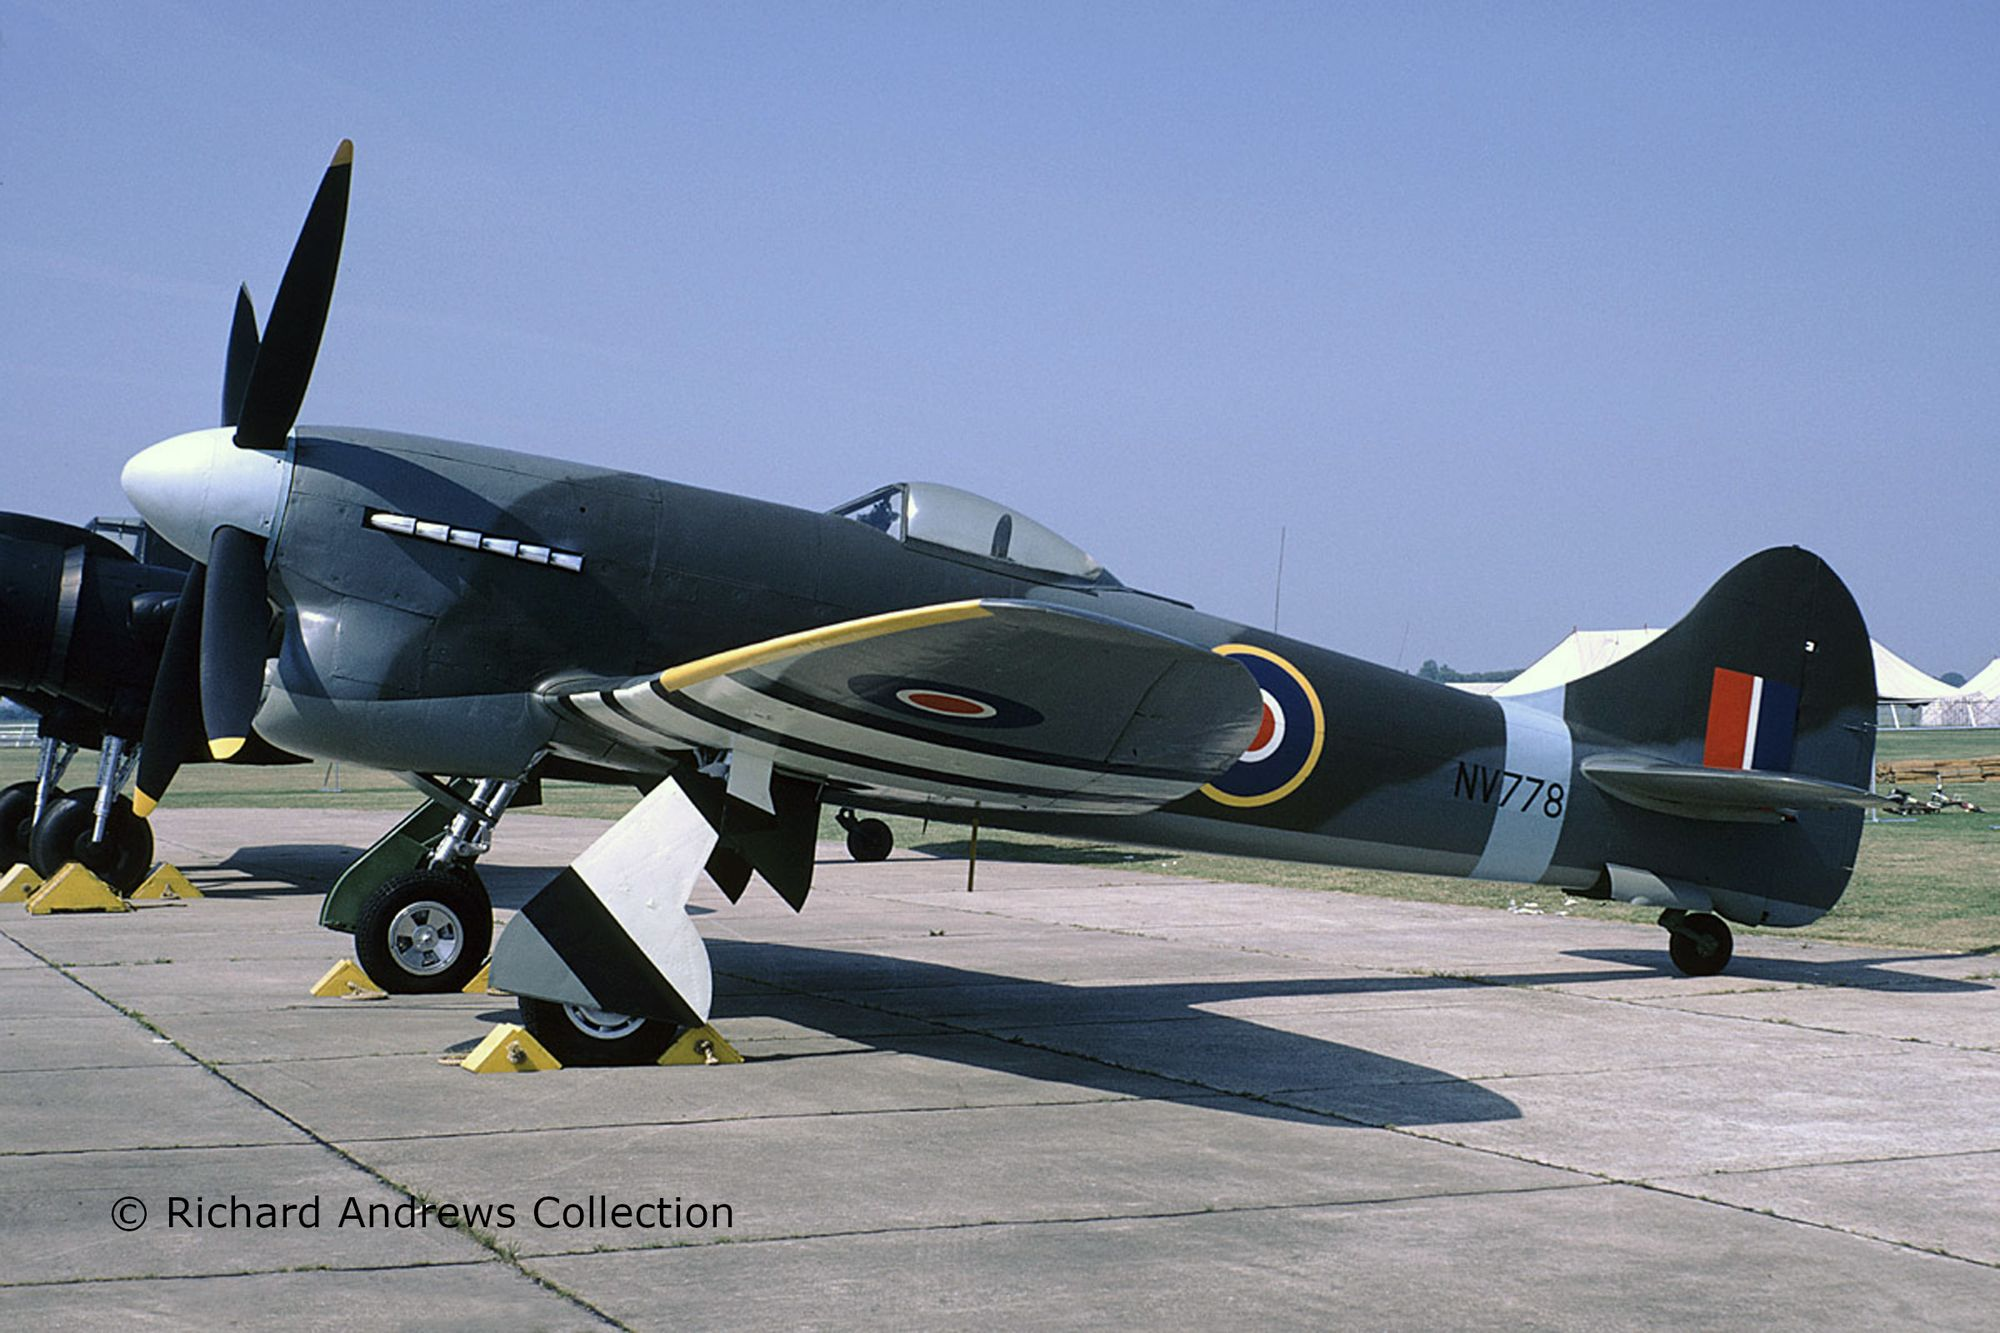 03851-Hawker-Tempest-V-c-Richard-Andrews-Collection Revell-Neuheiten 2020